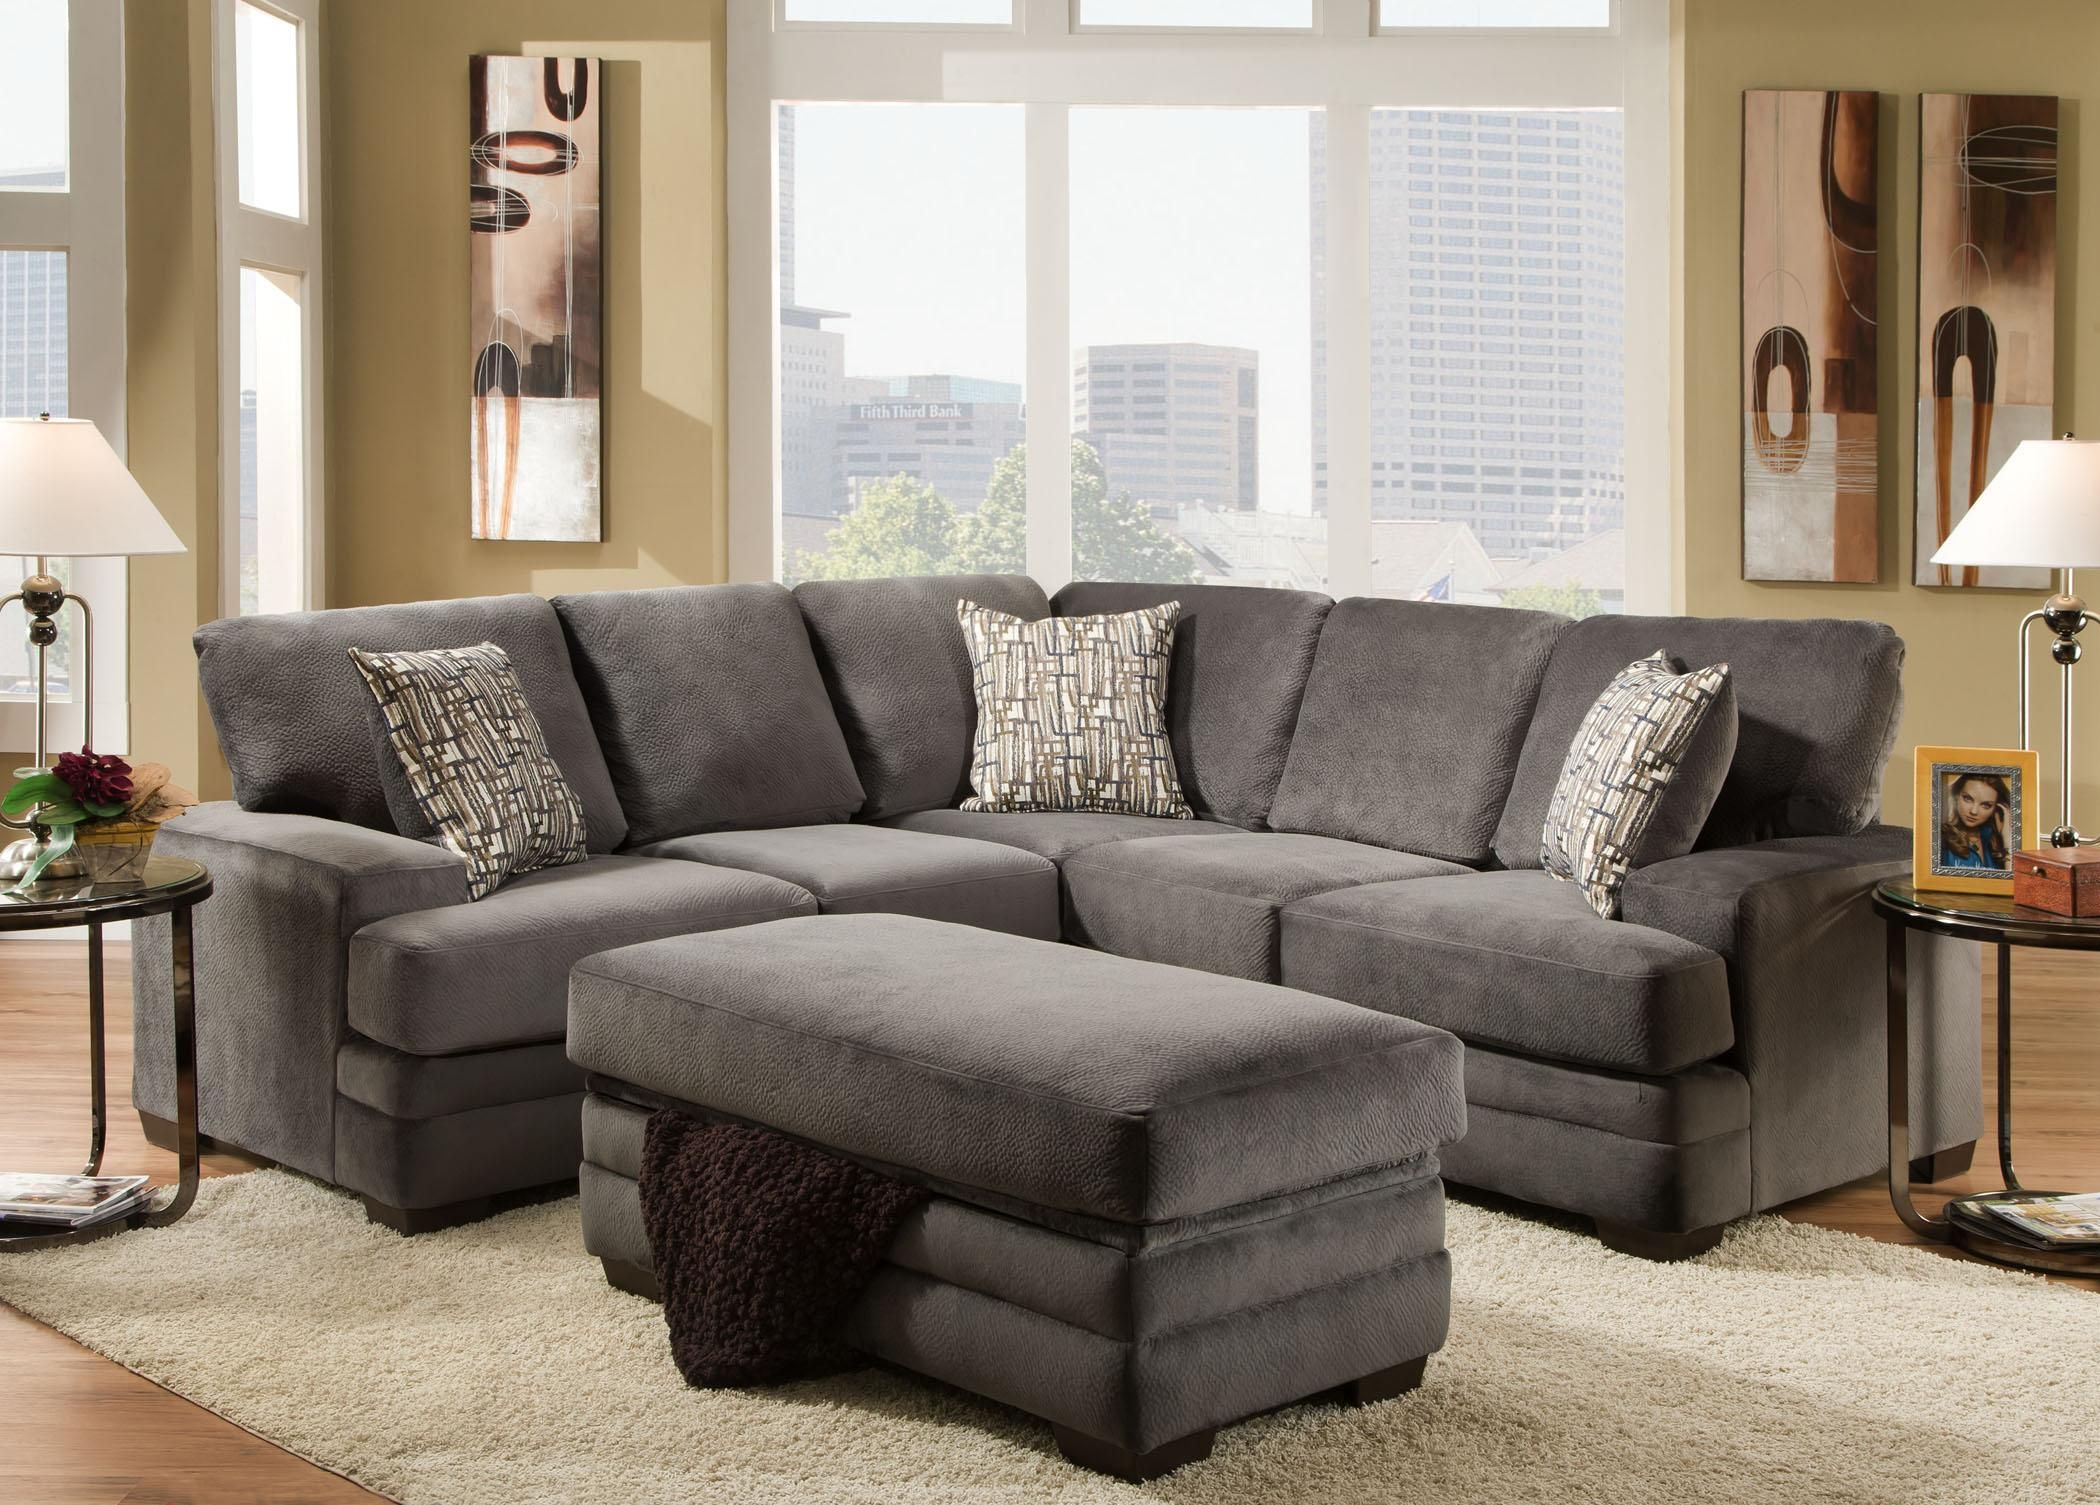 Contemporary Sectional Sofa with 4 Seats - 3500 by American Furniture - Wilcox Furniture - Sofa Sectional Corpus Christi Kingsville Calallen Texas : american furniture sectional - Sectionals, Sofas & Couches